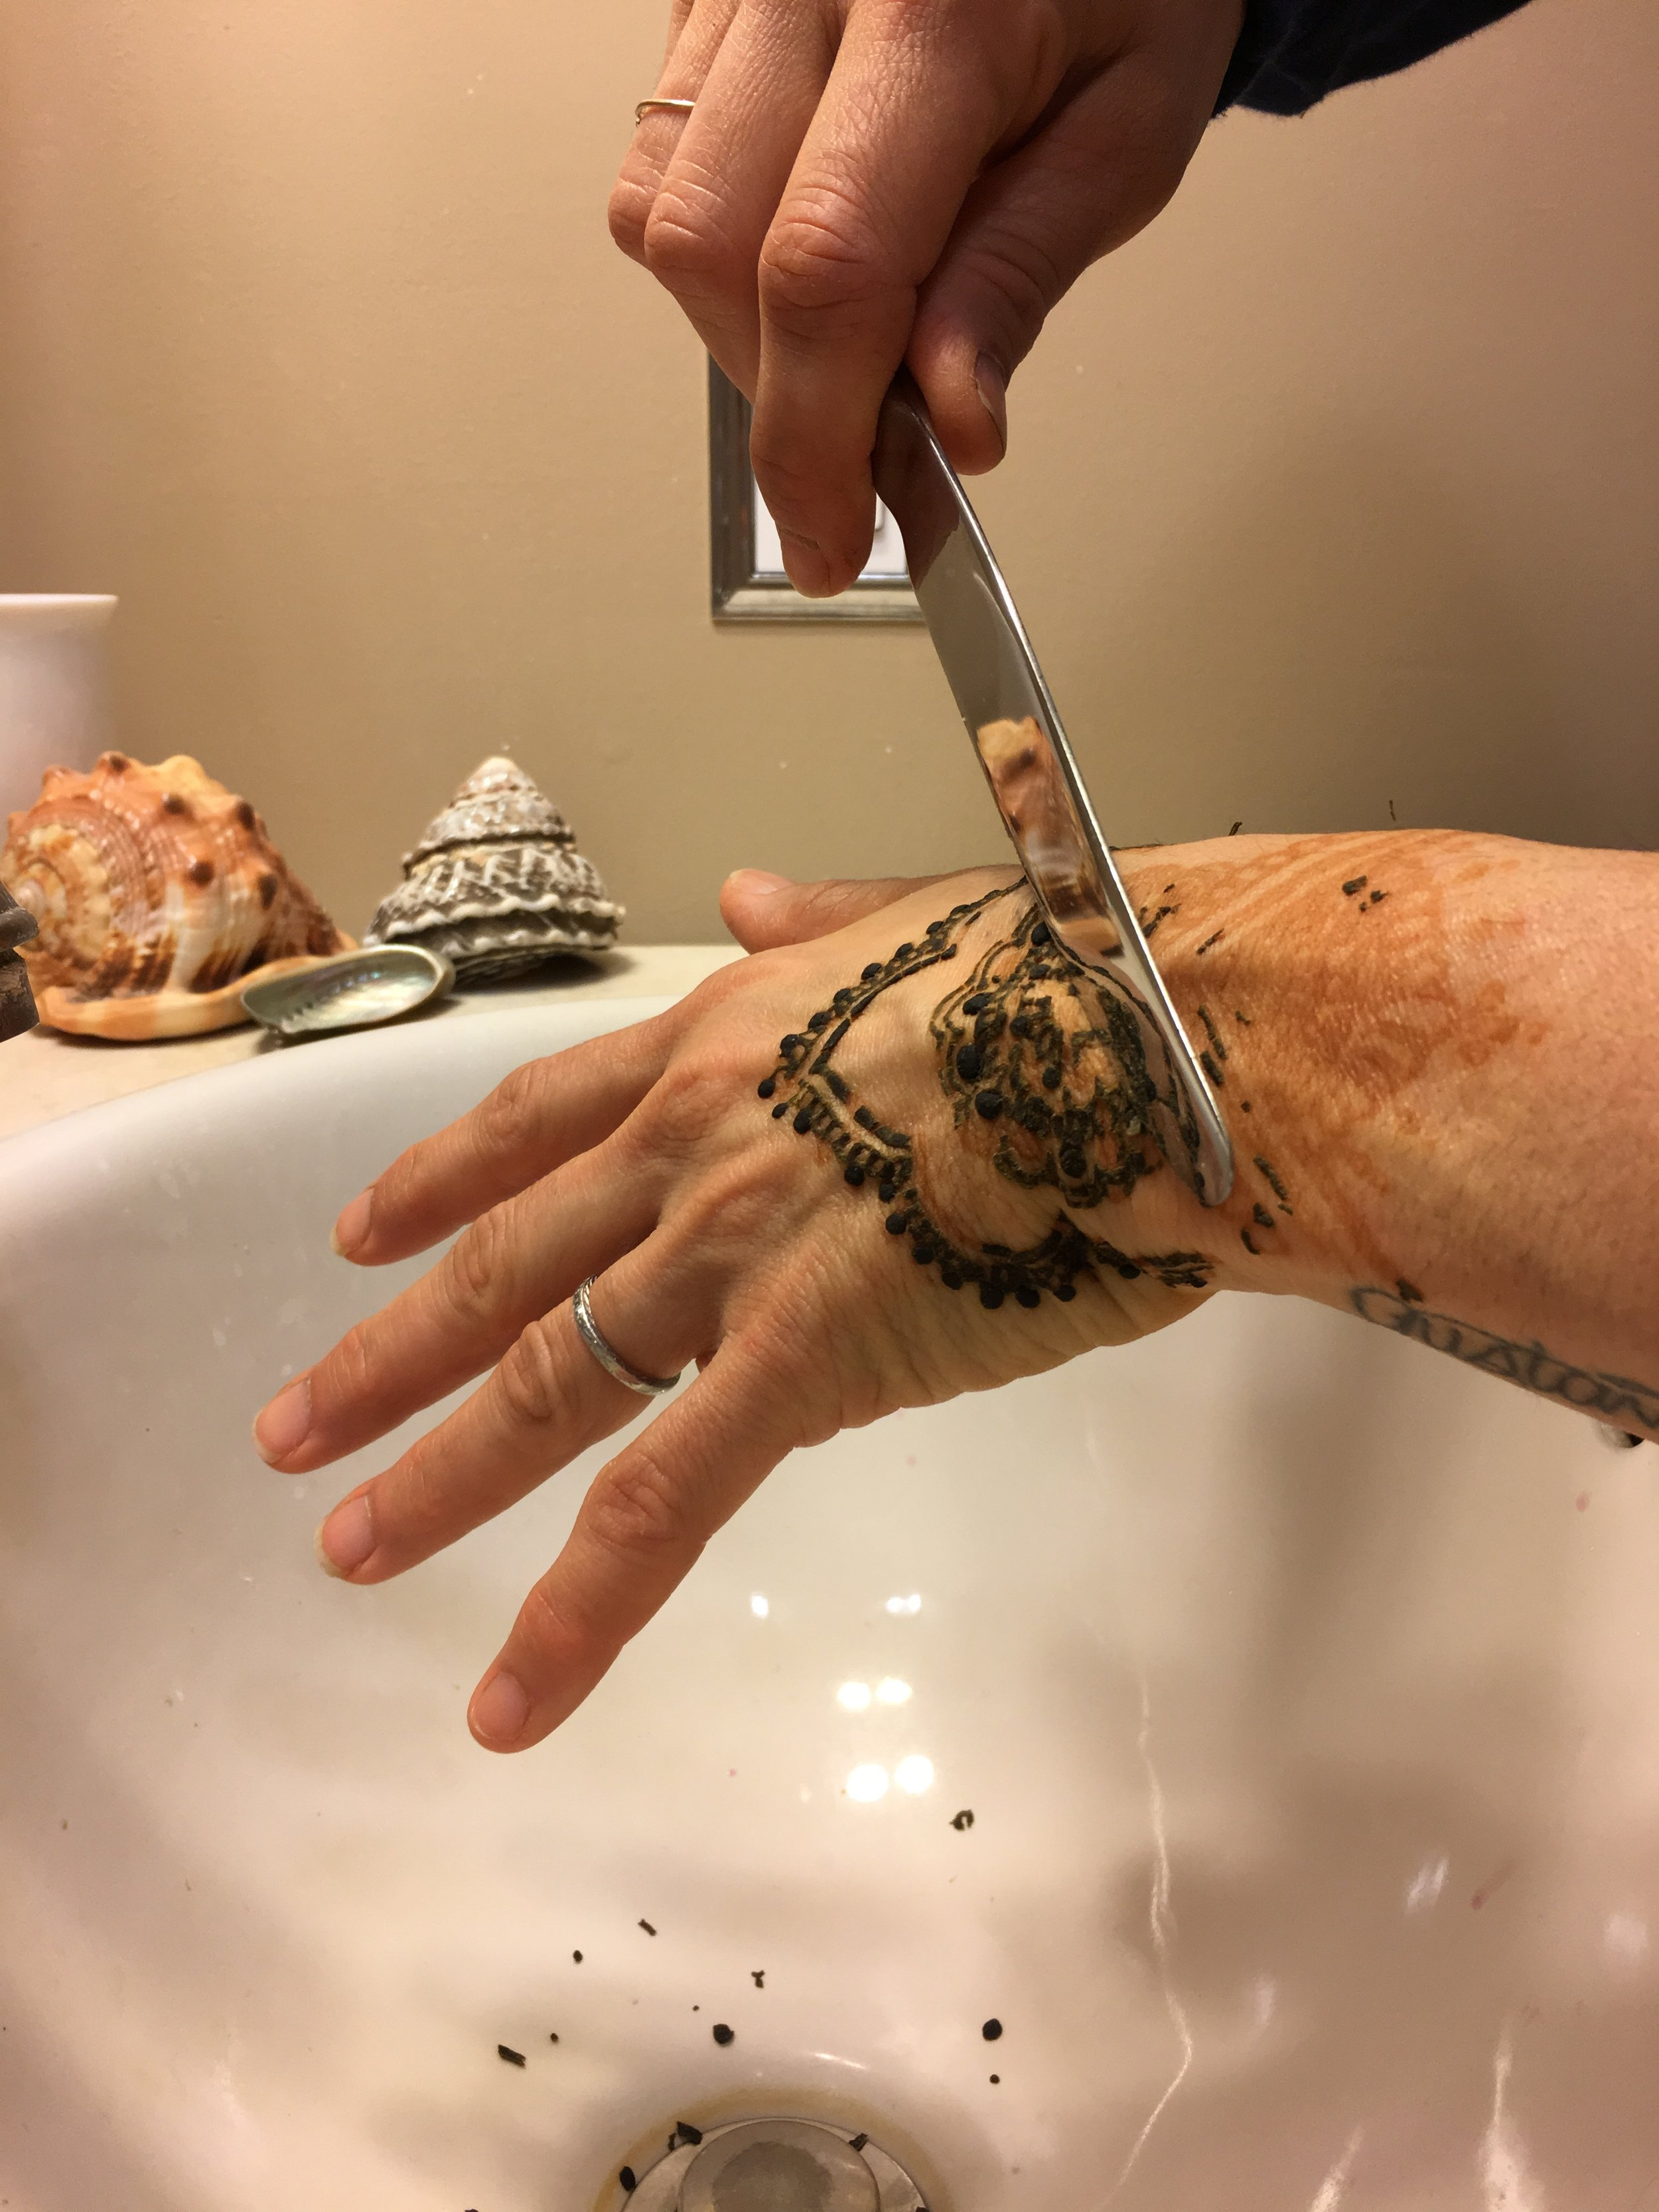 Removal of paste